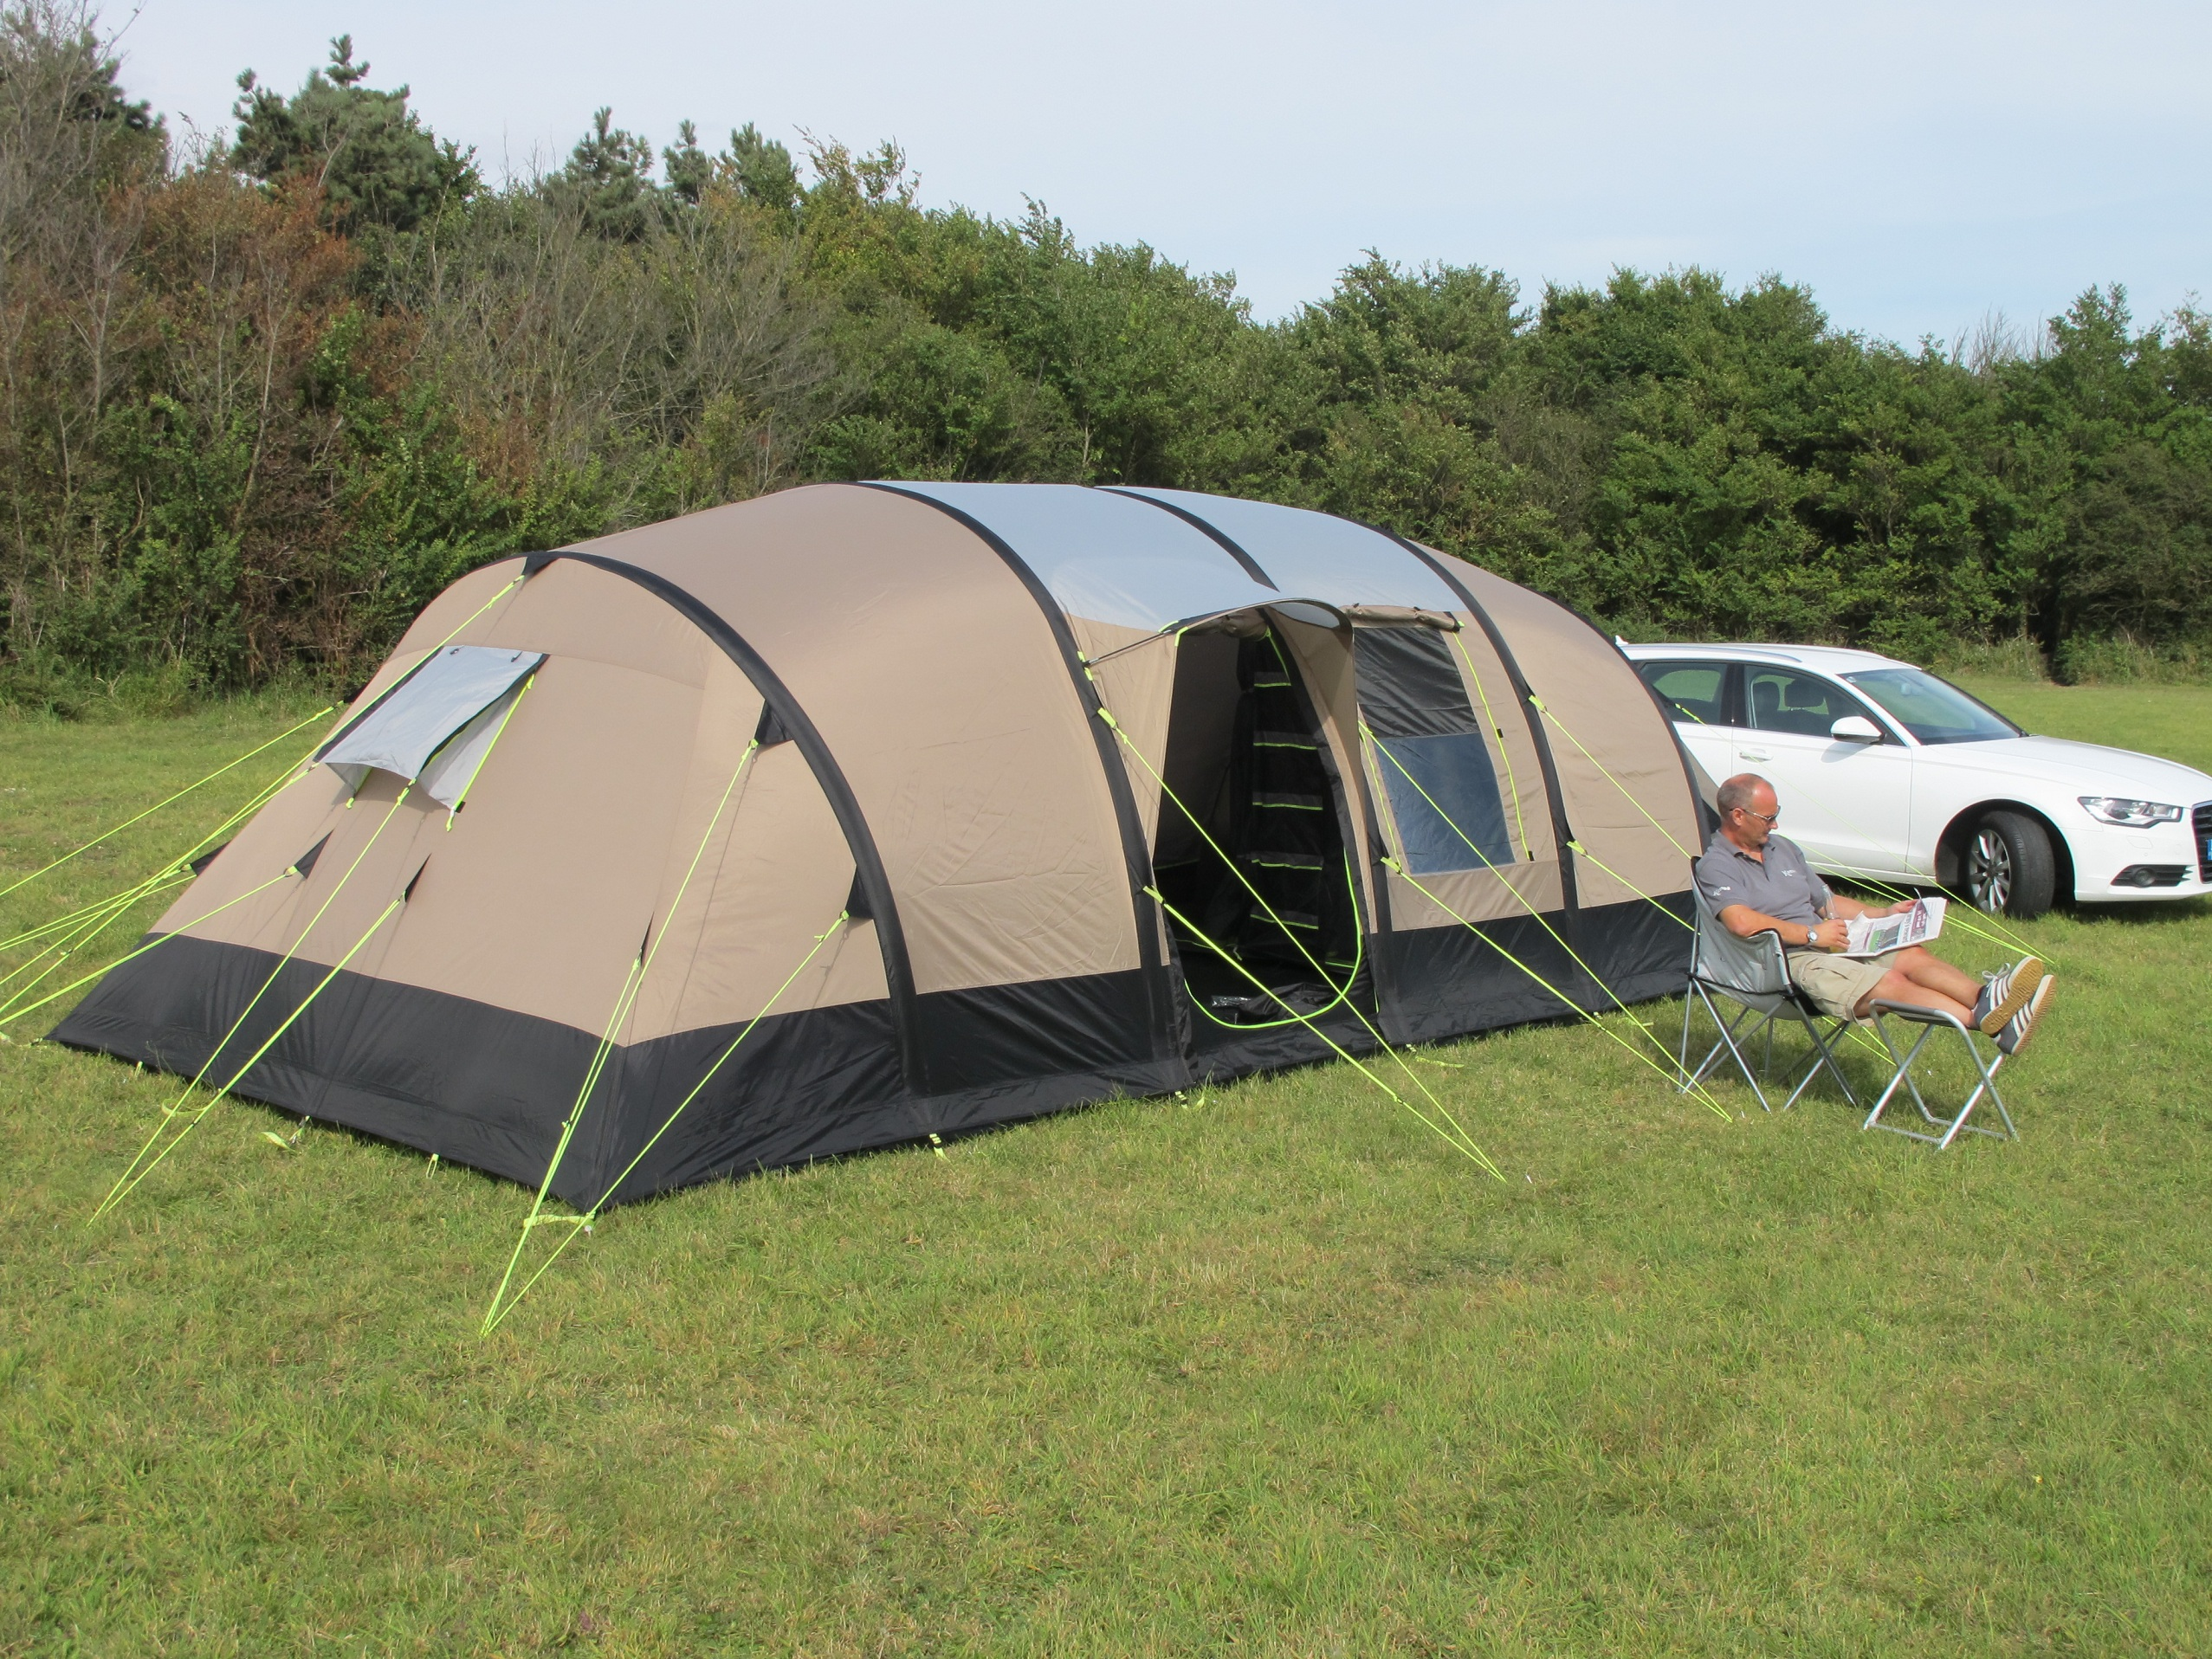 8 Man Tents Tents For 8 People Large Family Tents